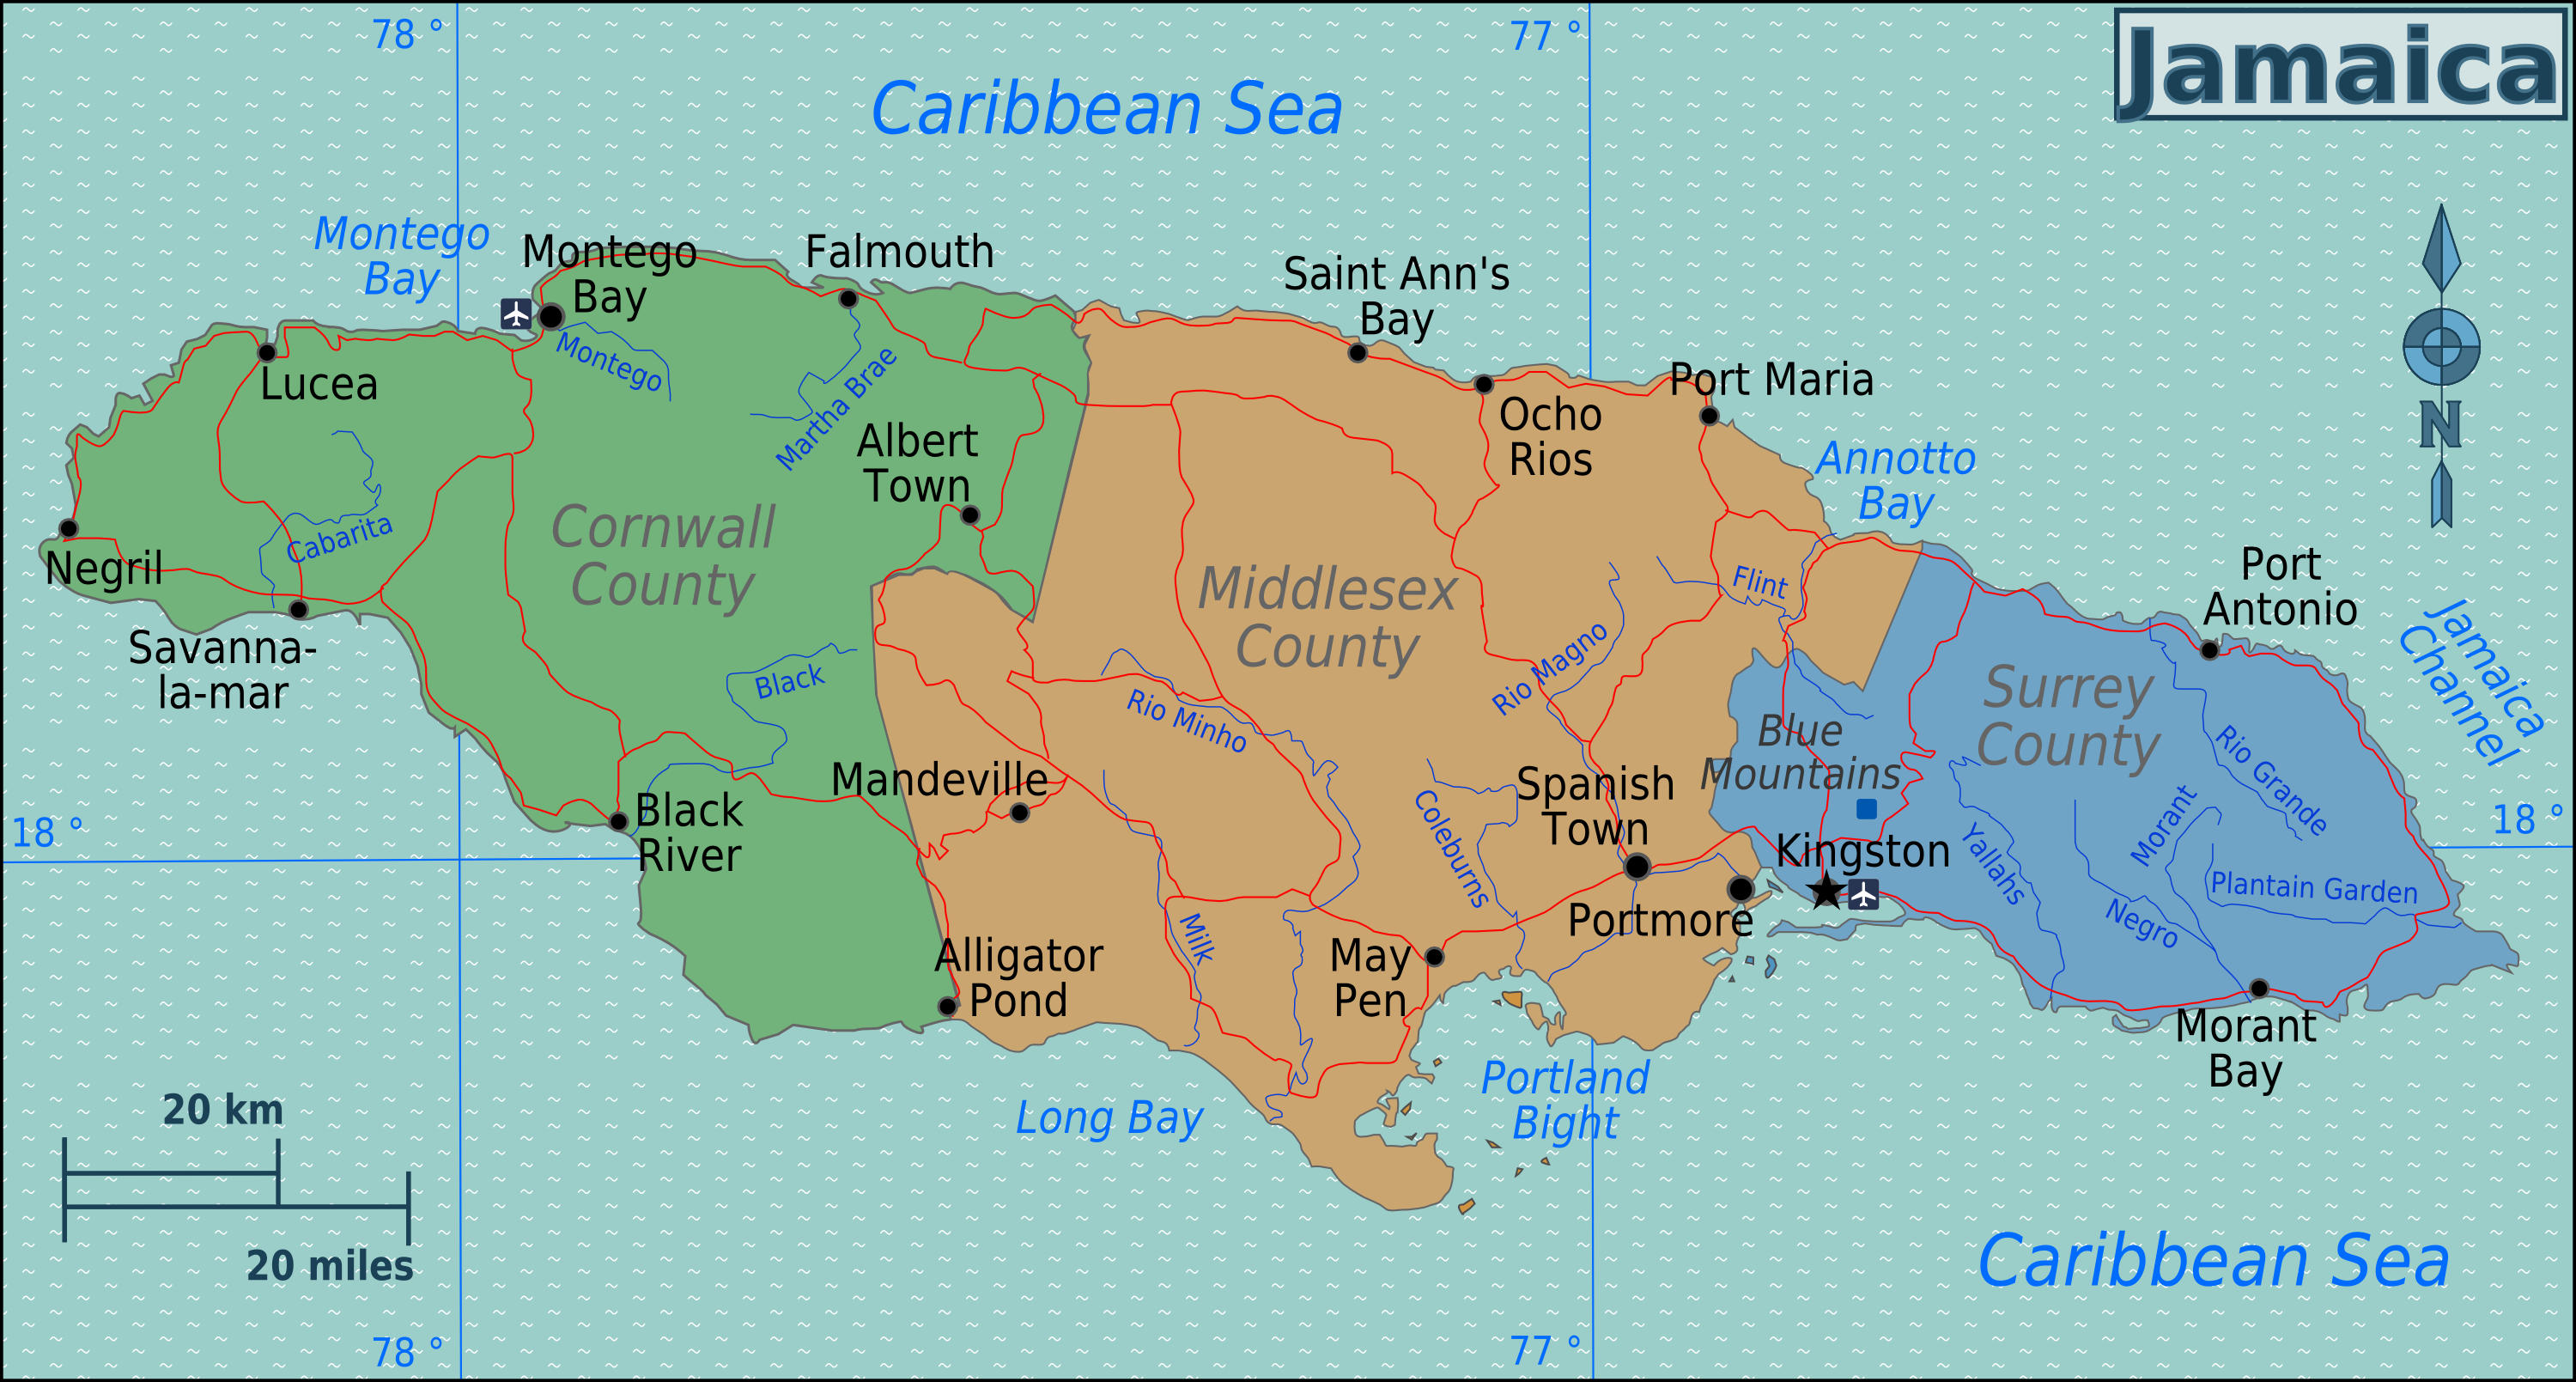 FileJamaica Regions Mappng Wikimedia Commons - Jamaica map